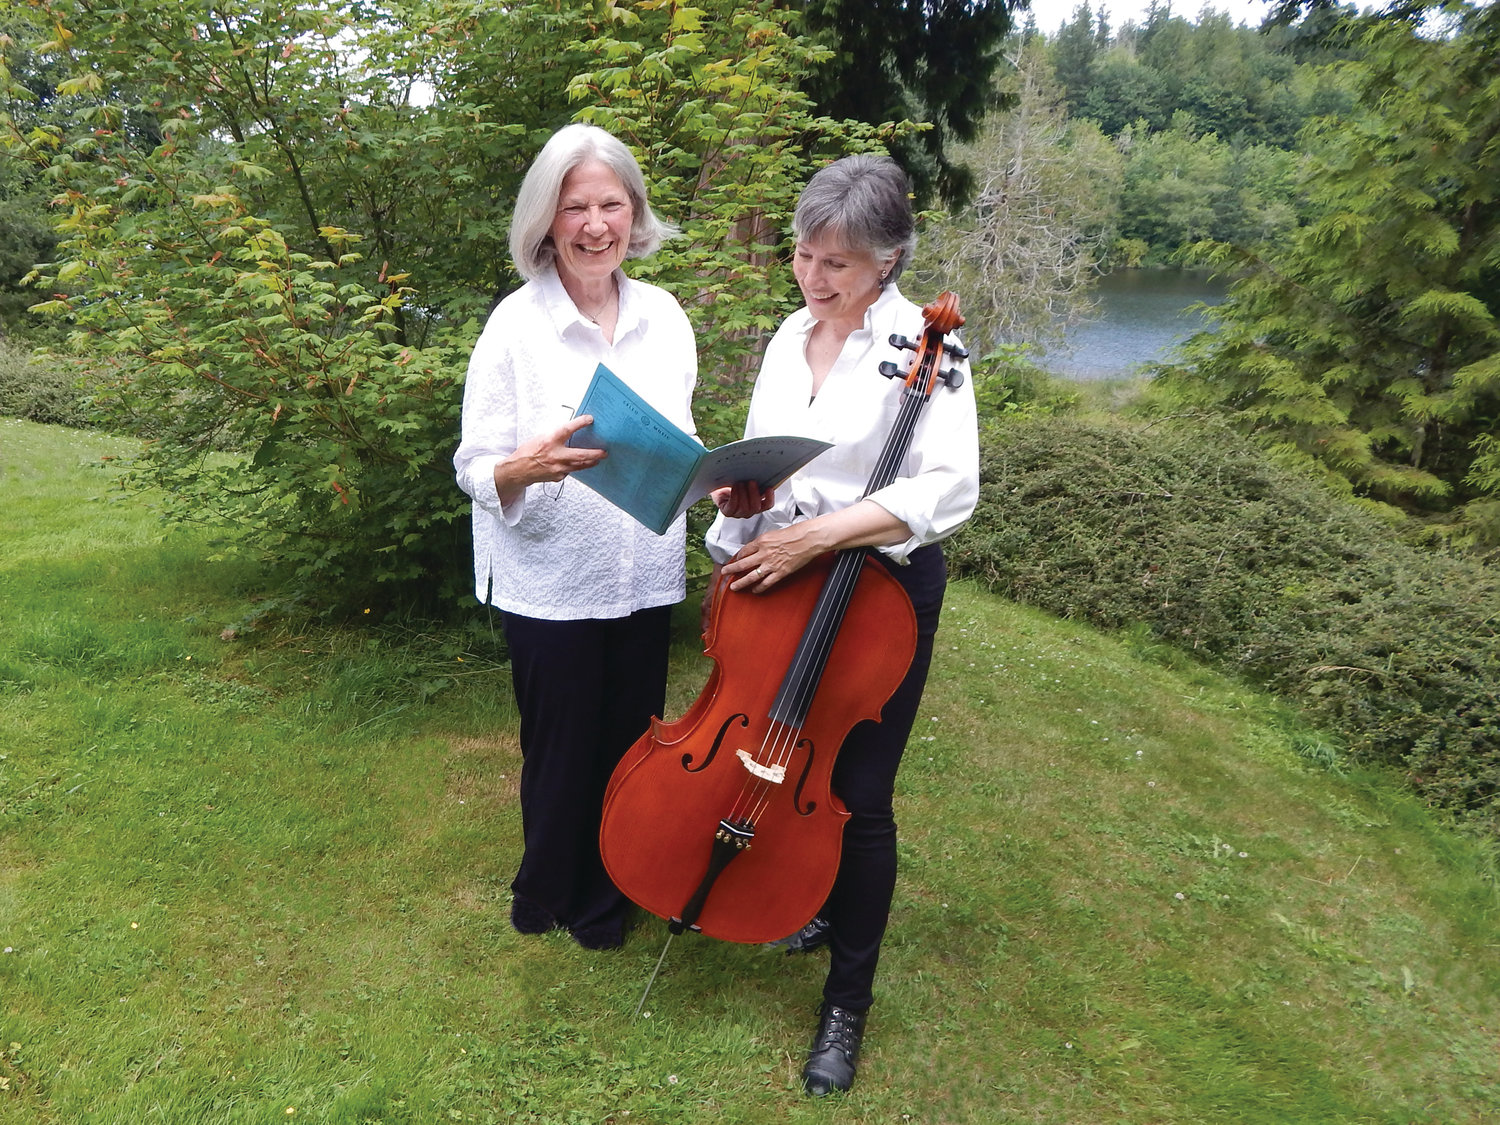 Cellist Pamela Roberts and pianist Sheila Harwood are ready to make their debut as Fauna Vivace.